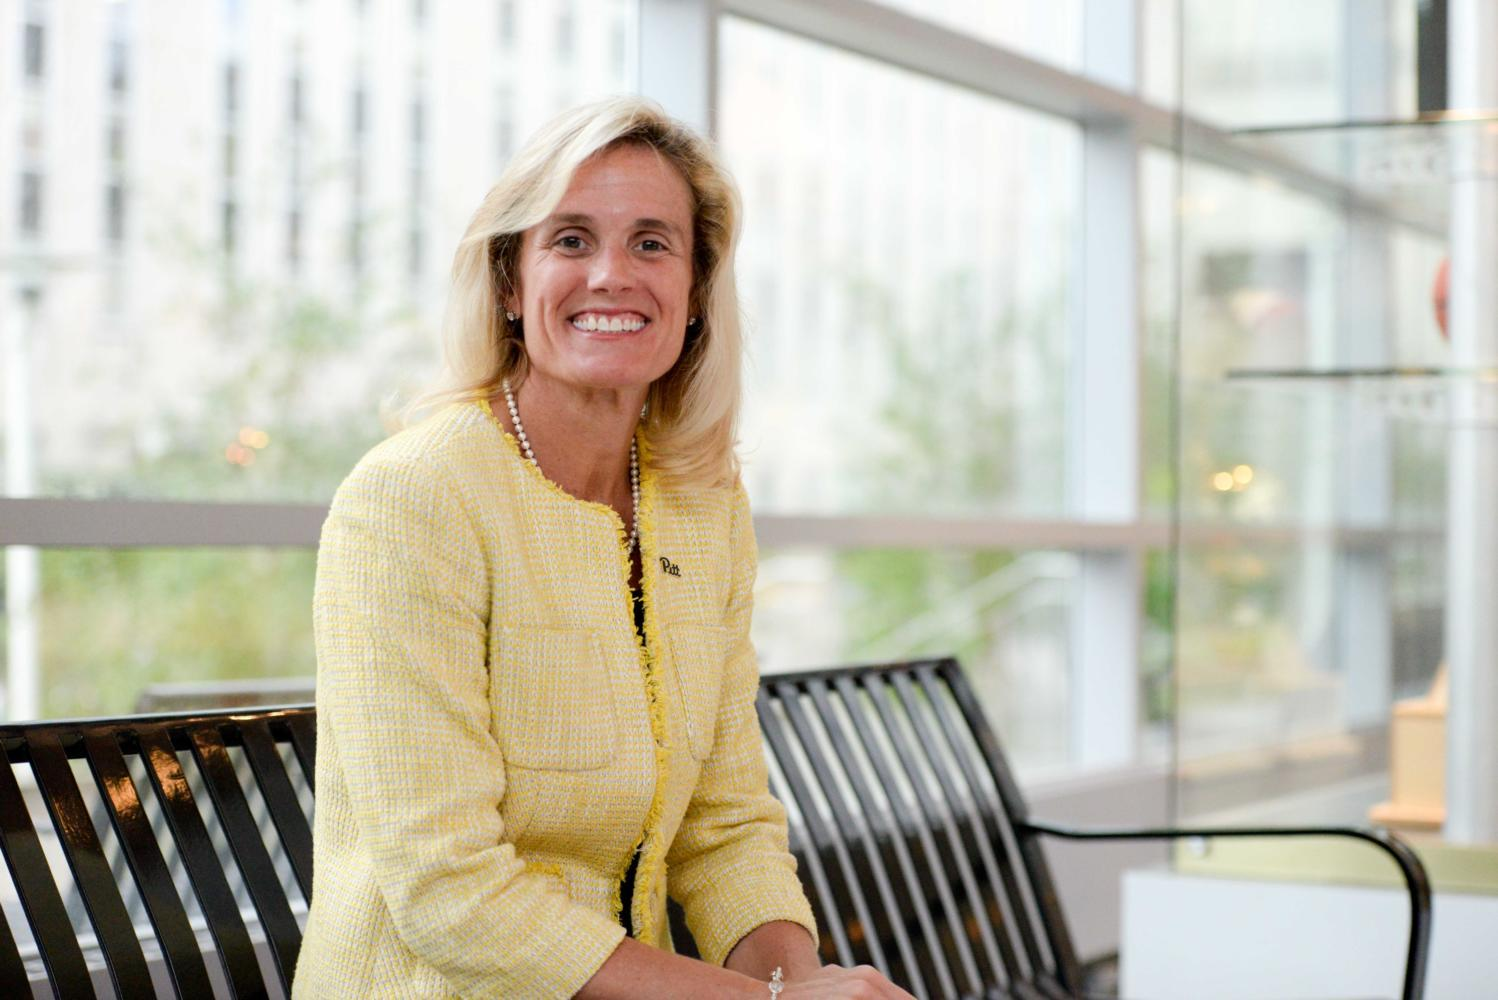 Heather Lyke received a contract extension to remain as the Athletic Director at Pitt through 2024 with Pitt's hope of securing more athletic stability and success. (TPN File Photo)